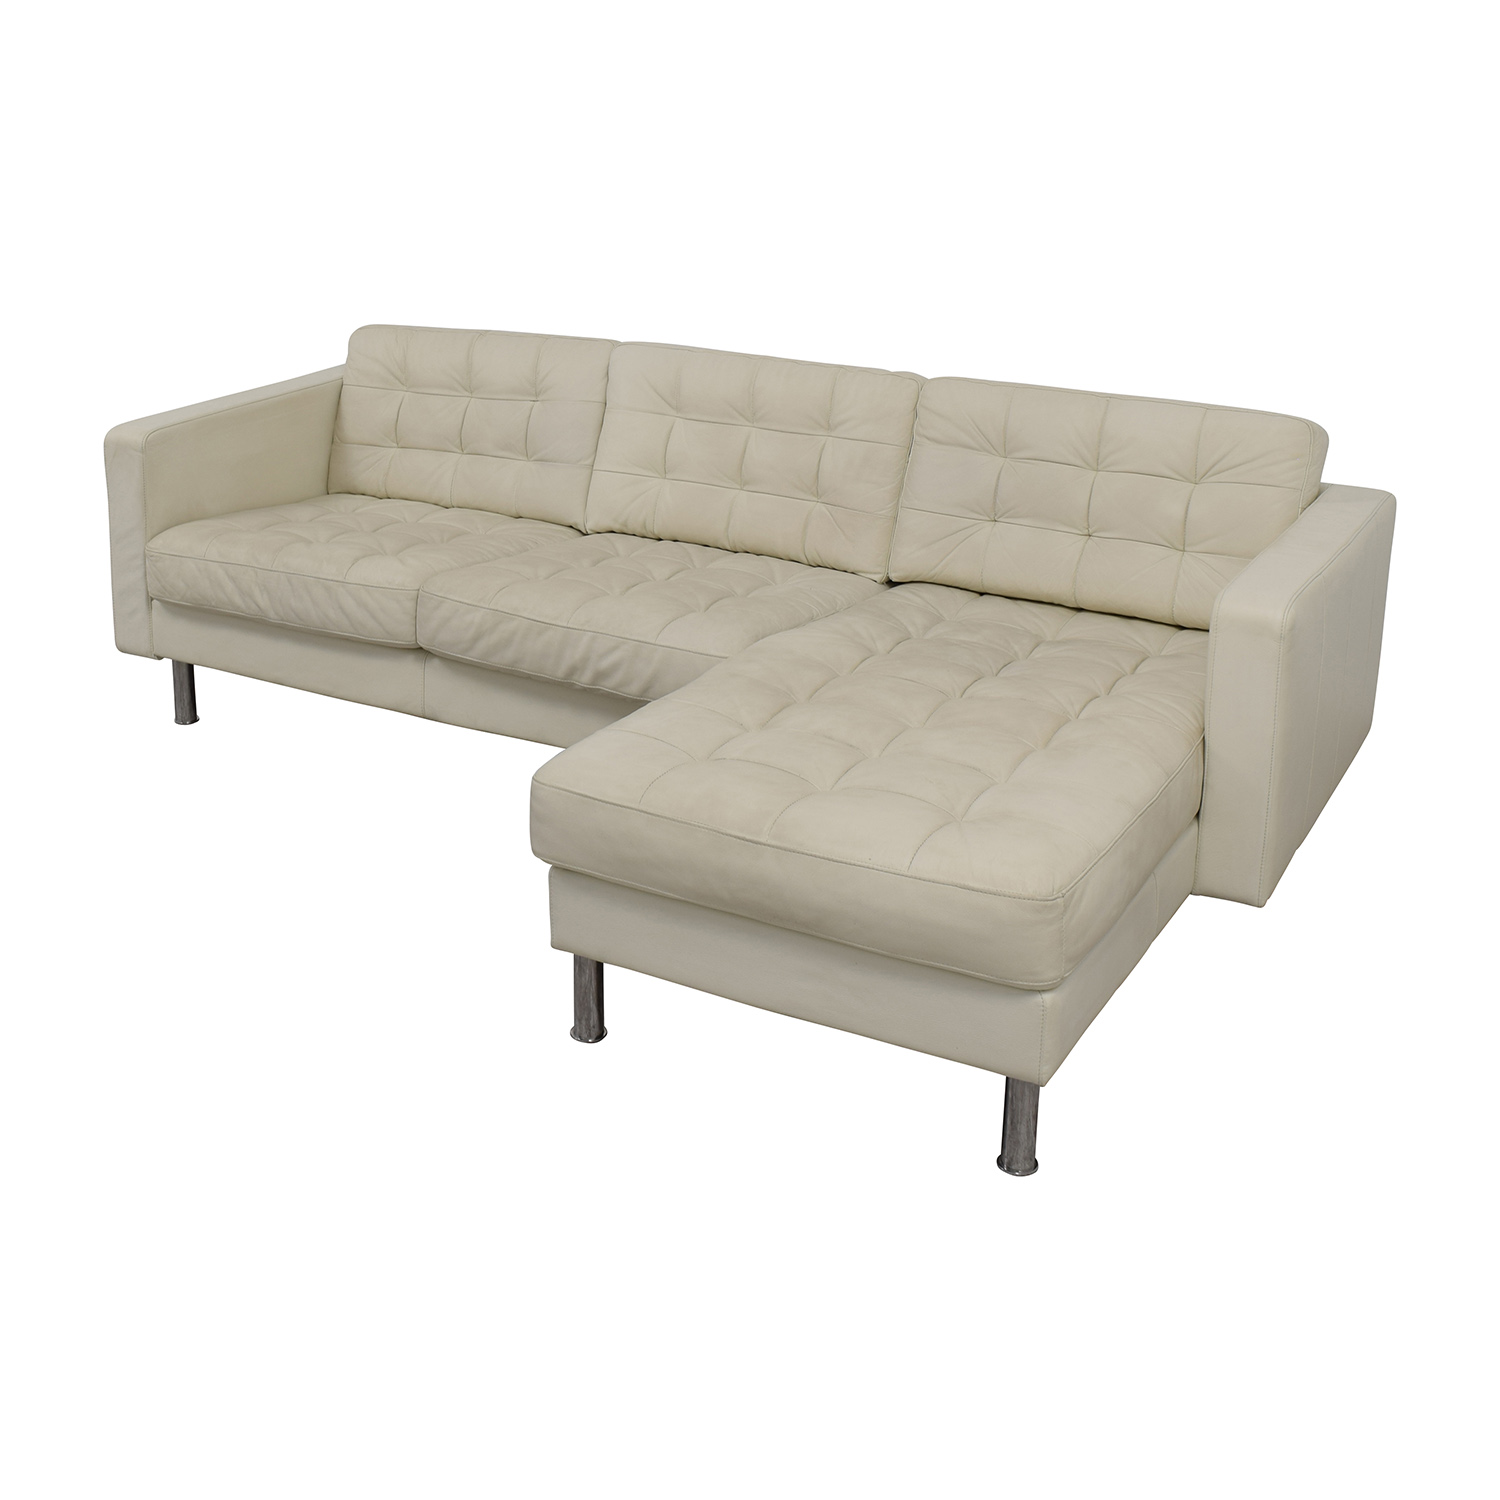 leather sofas ikea sofa bed newcastle 69 off landskrona sectional